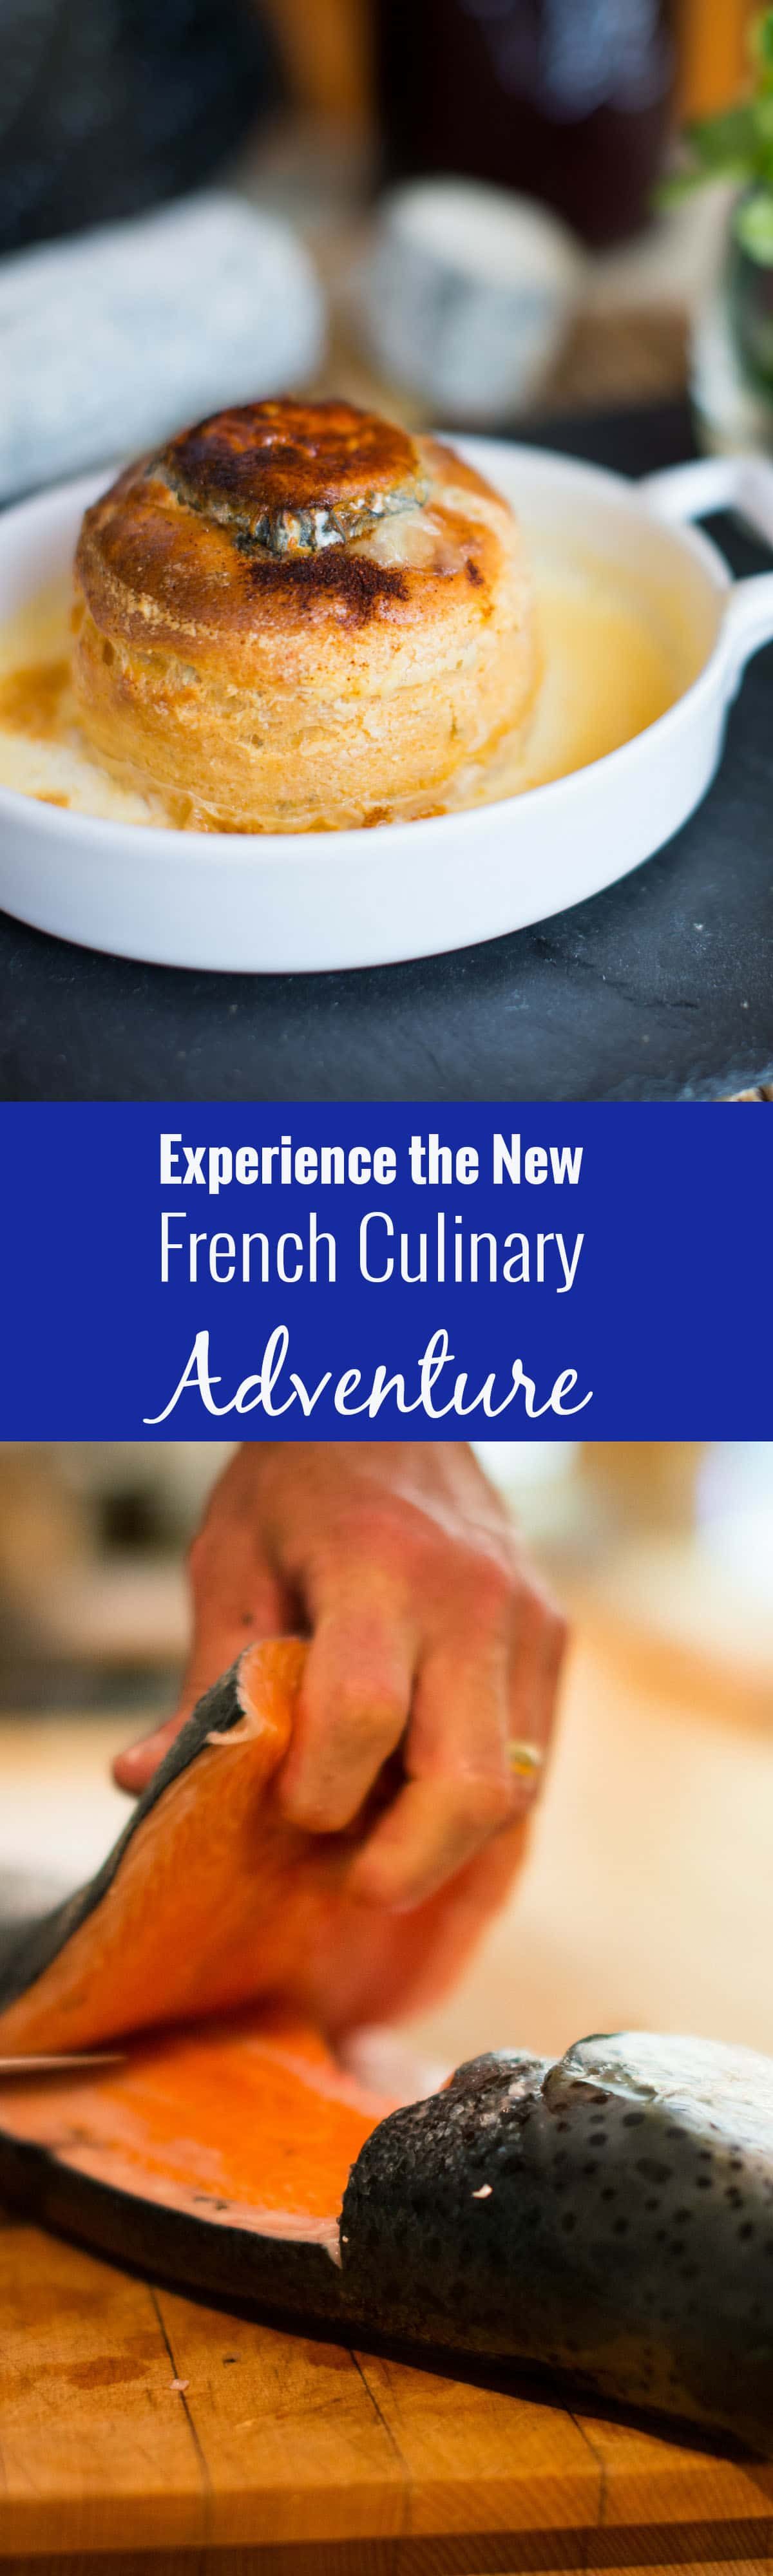 Take a look at what's planned in Le Calabash's new French Culinary Adventure itinerary! It's a tasty way to experience France!